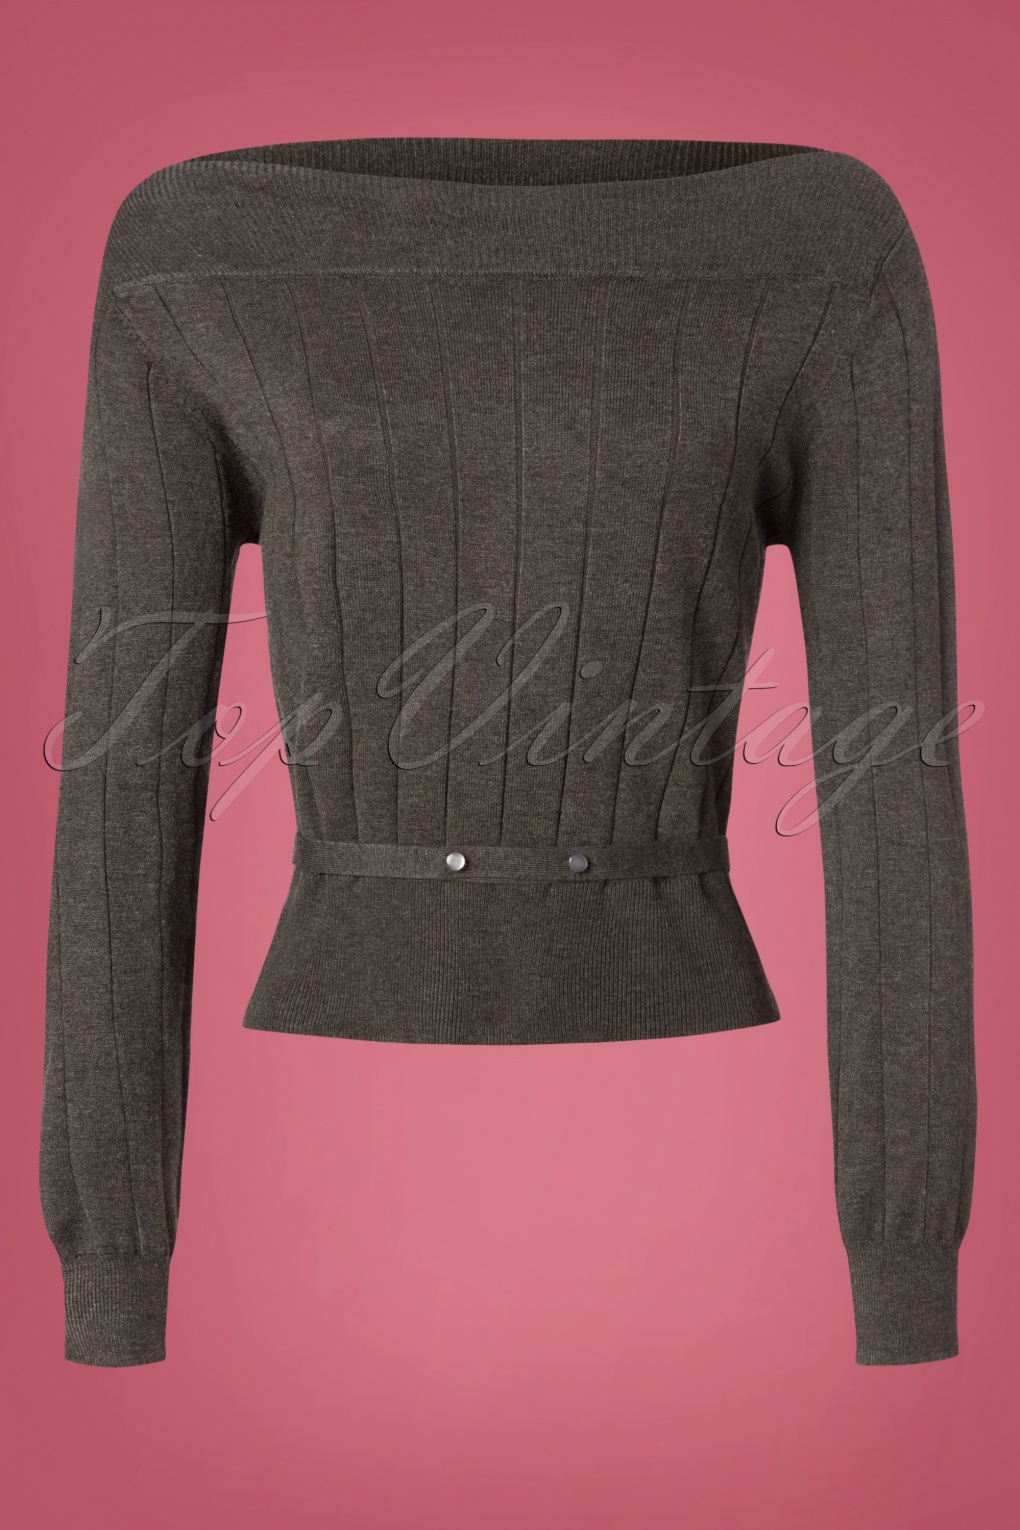 Vintage & Retro Shirts, Halter Tops, Blouses 60s Violetta Knitted Top in Grey £32.97 AT vintagedancer.com